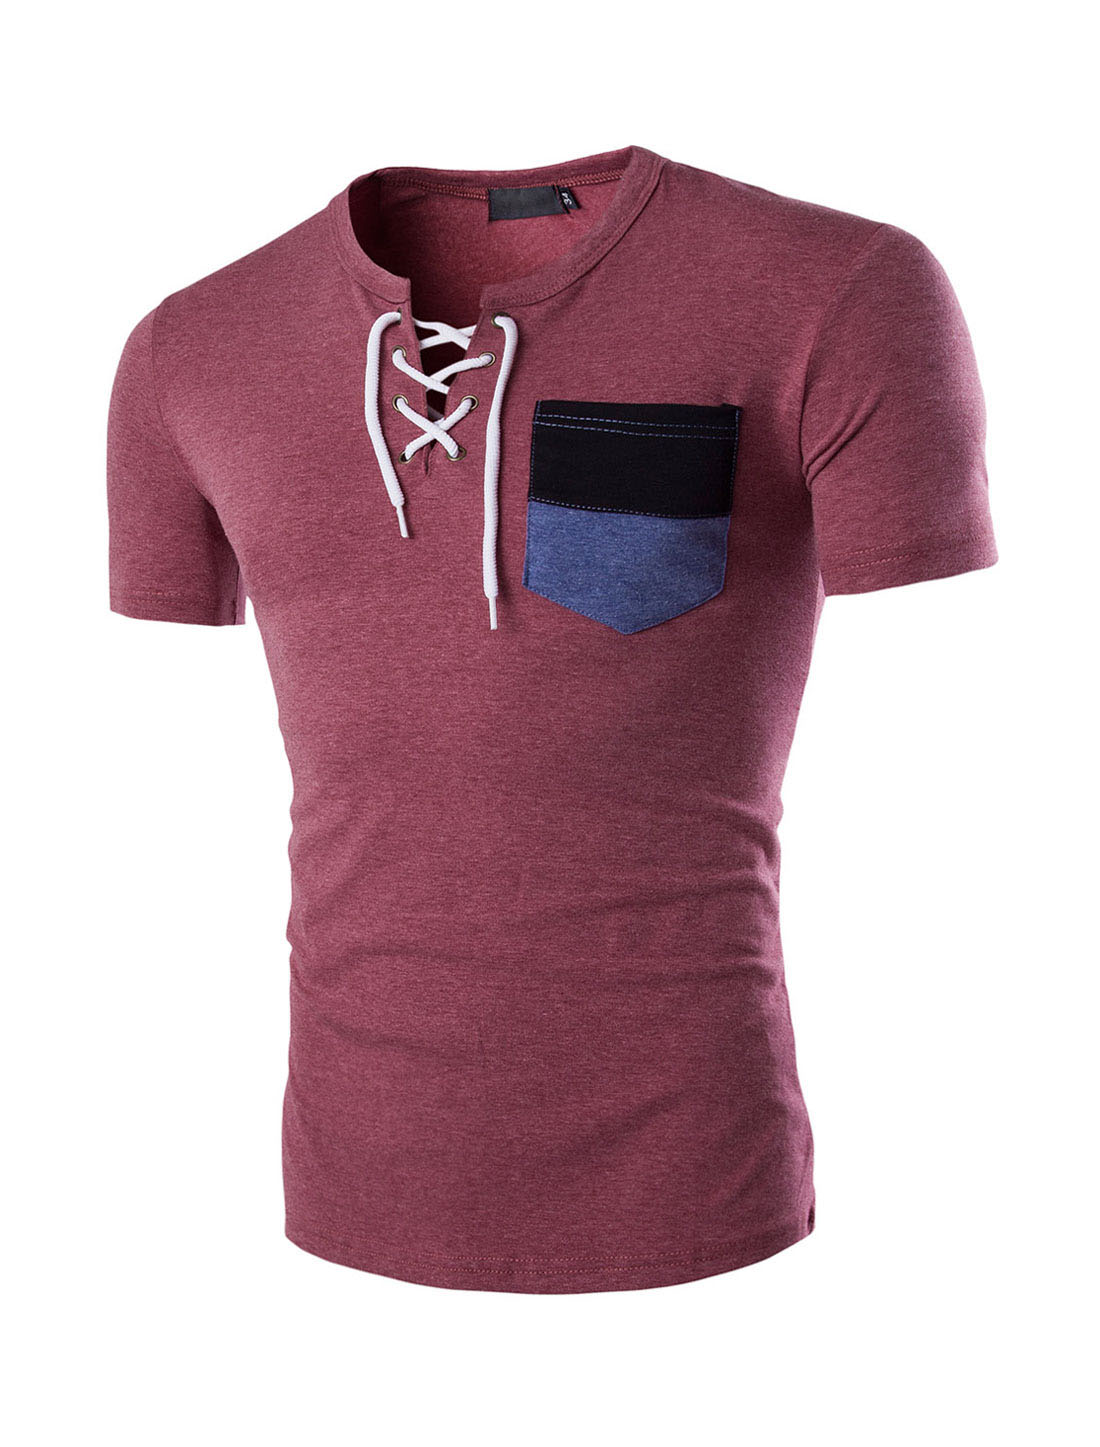 Men Short Sleeves Chest Pocket Lace-up T-Shirts Burgundy M